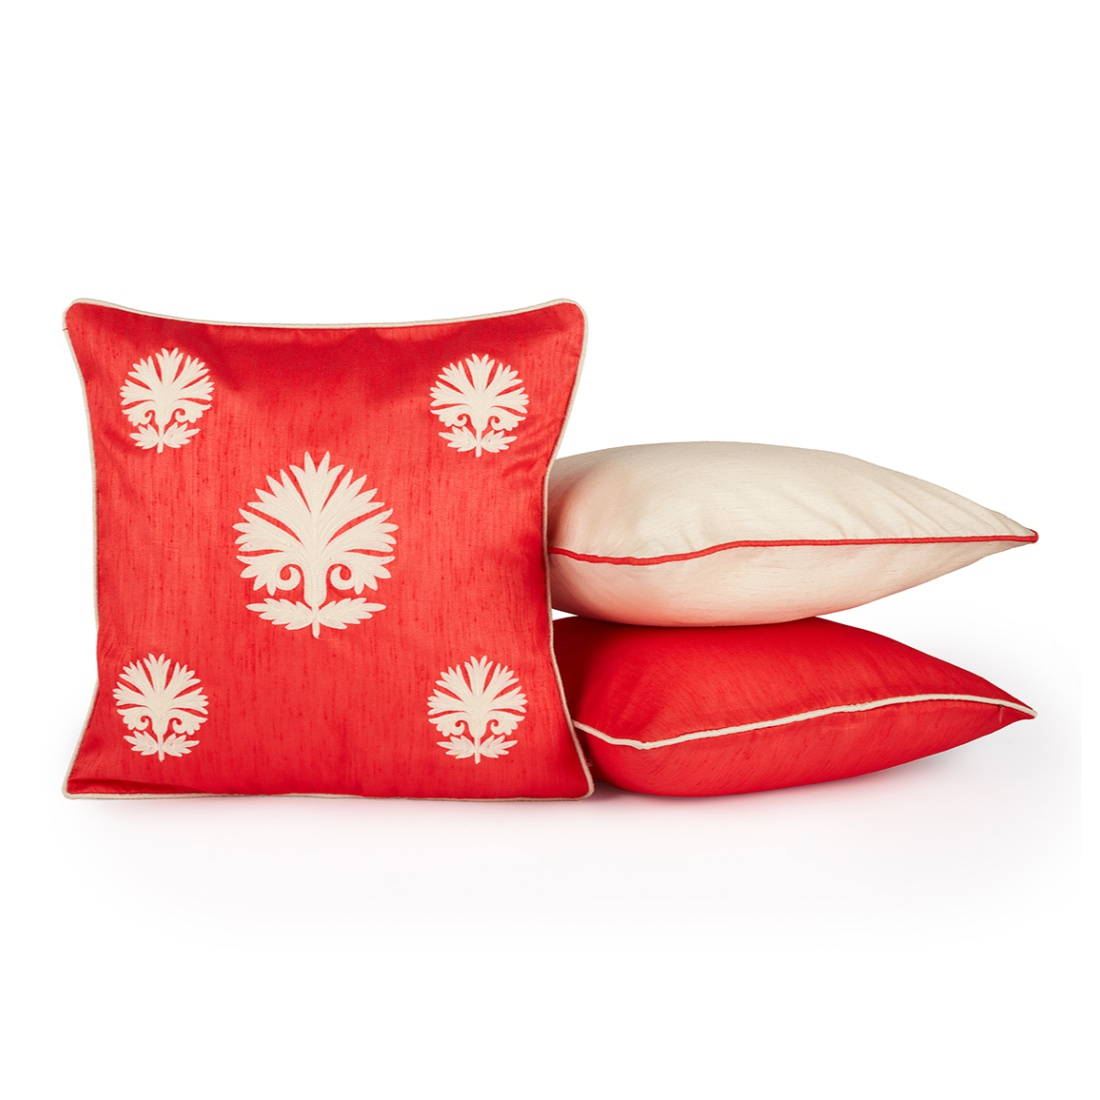 Fiesta Set Of 3 Cushion Covers Coral Polyester Cushion Cover Sets in Coral Colour by Living Essence